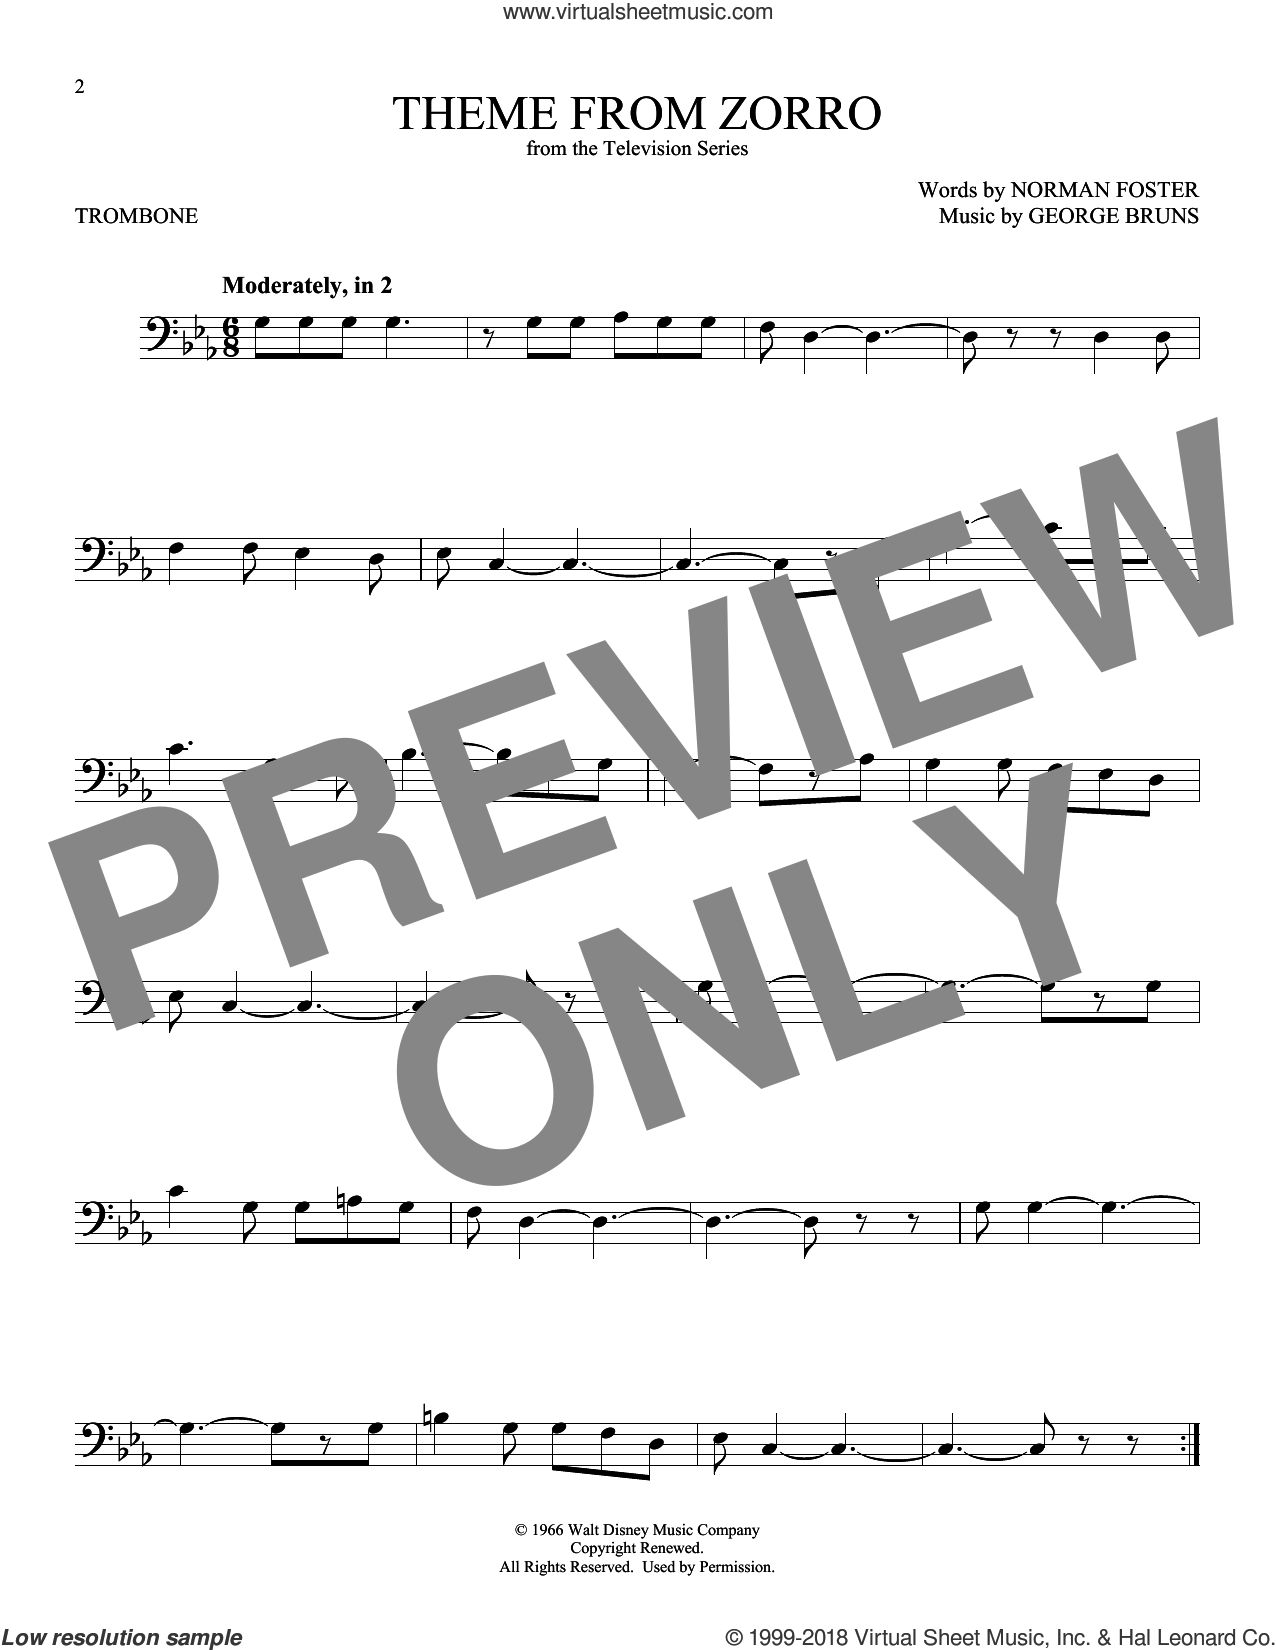 Theme From Zorro sheet music for trombone solo by George Bruns and Norman Foster, intermediate